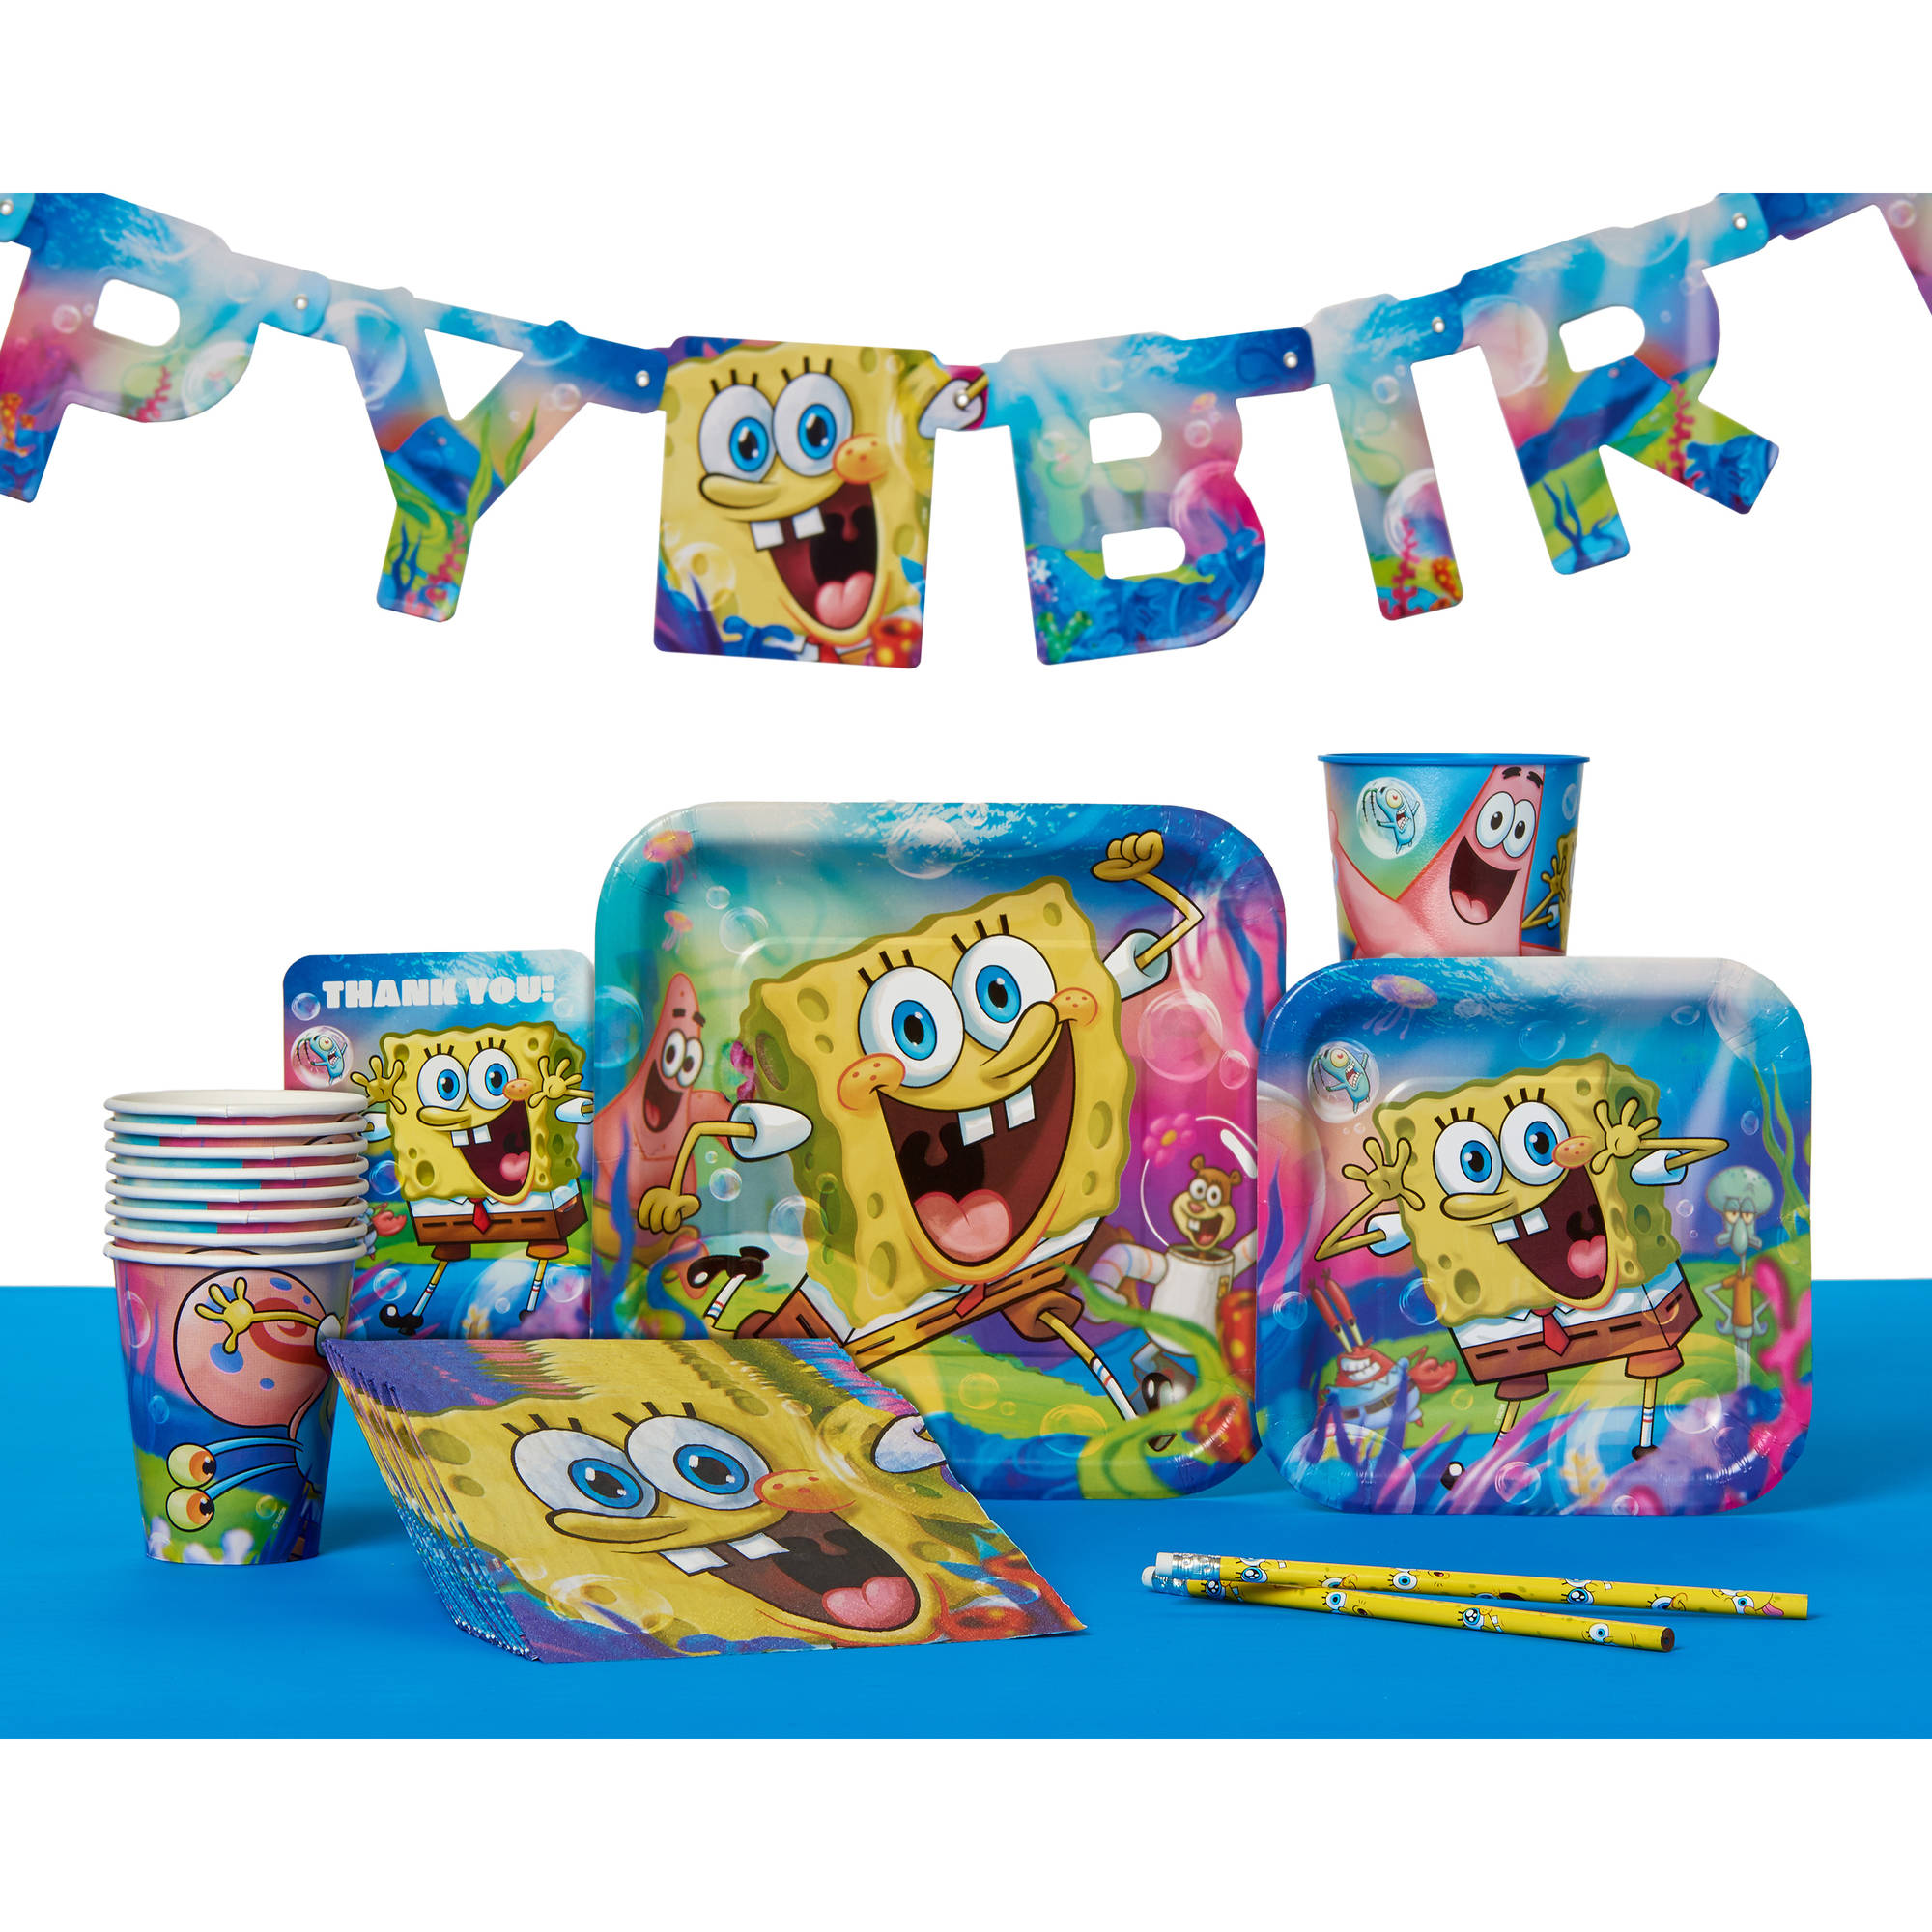 SpongeBob SquarePants Party Favor Sticker Sheets 8ct Walmart